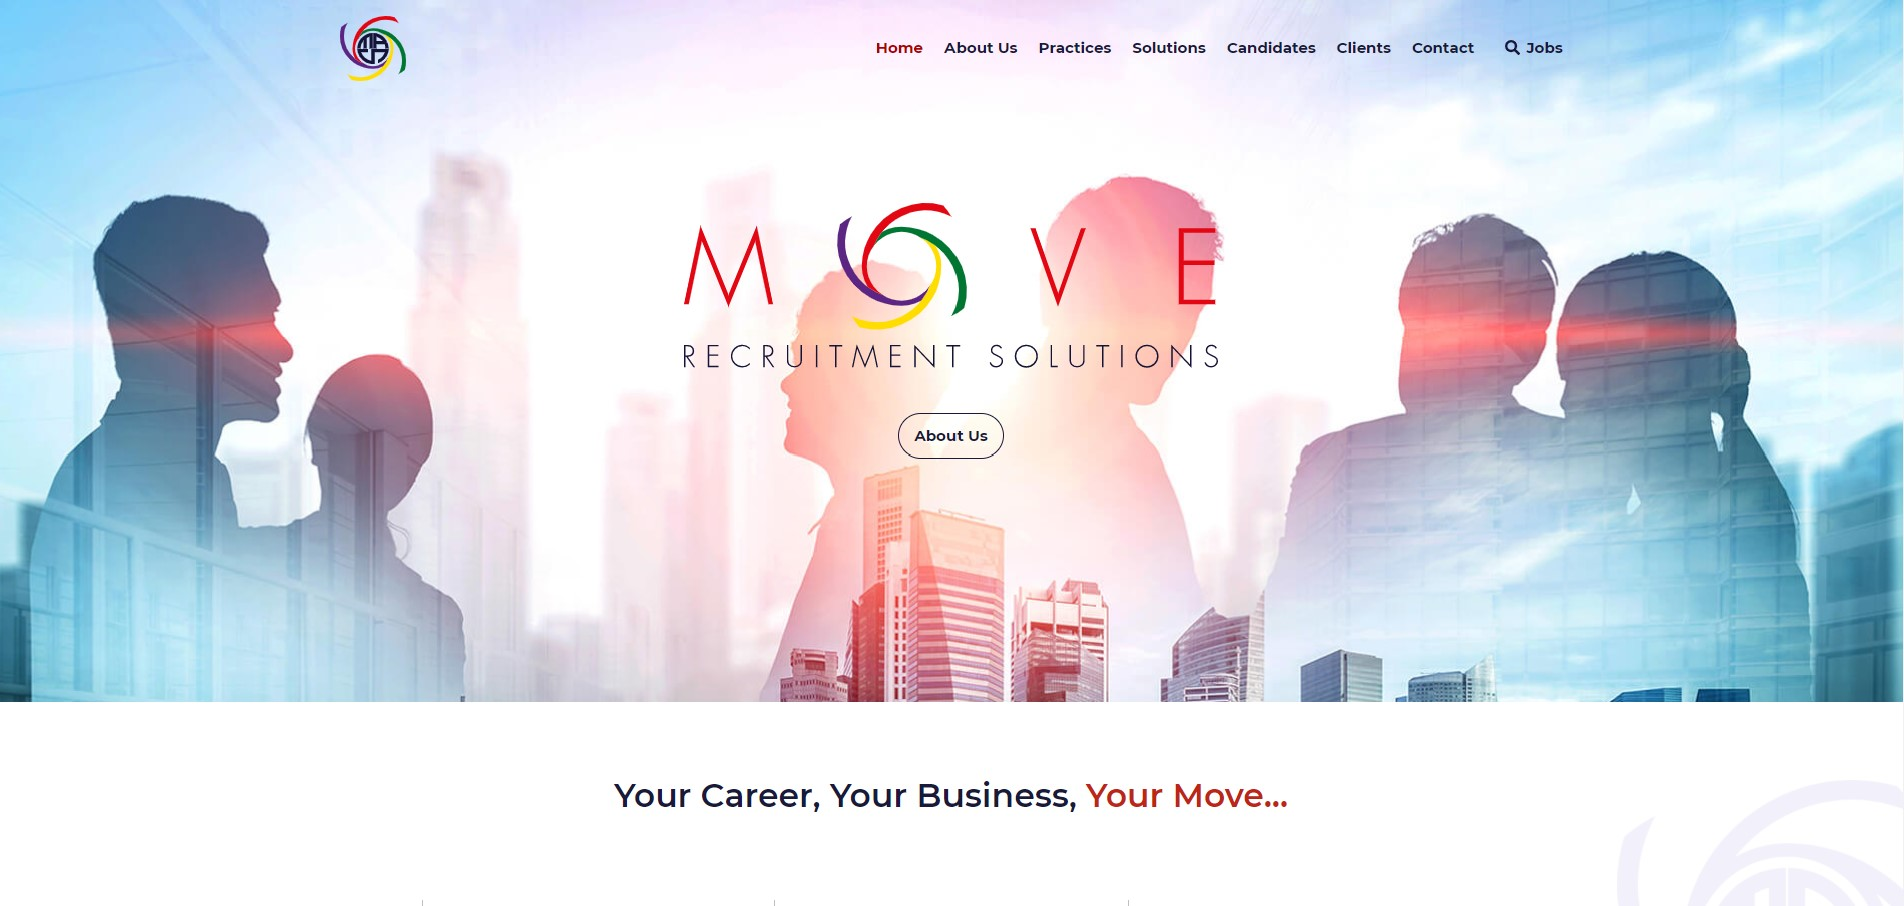 Move Recruitment  Image